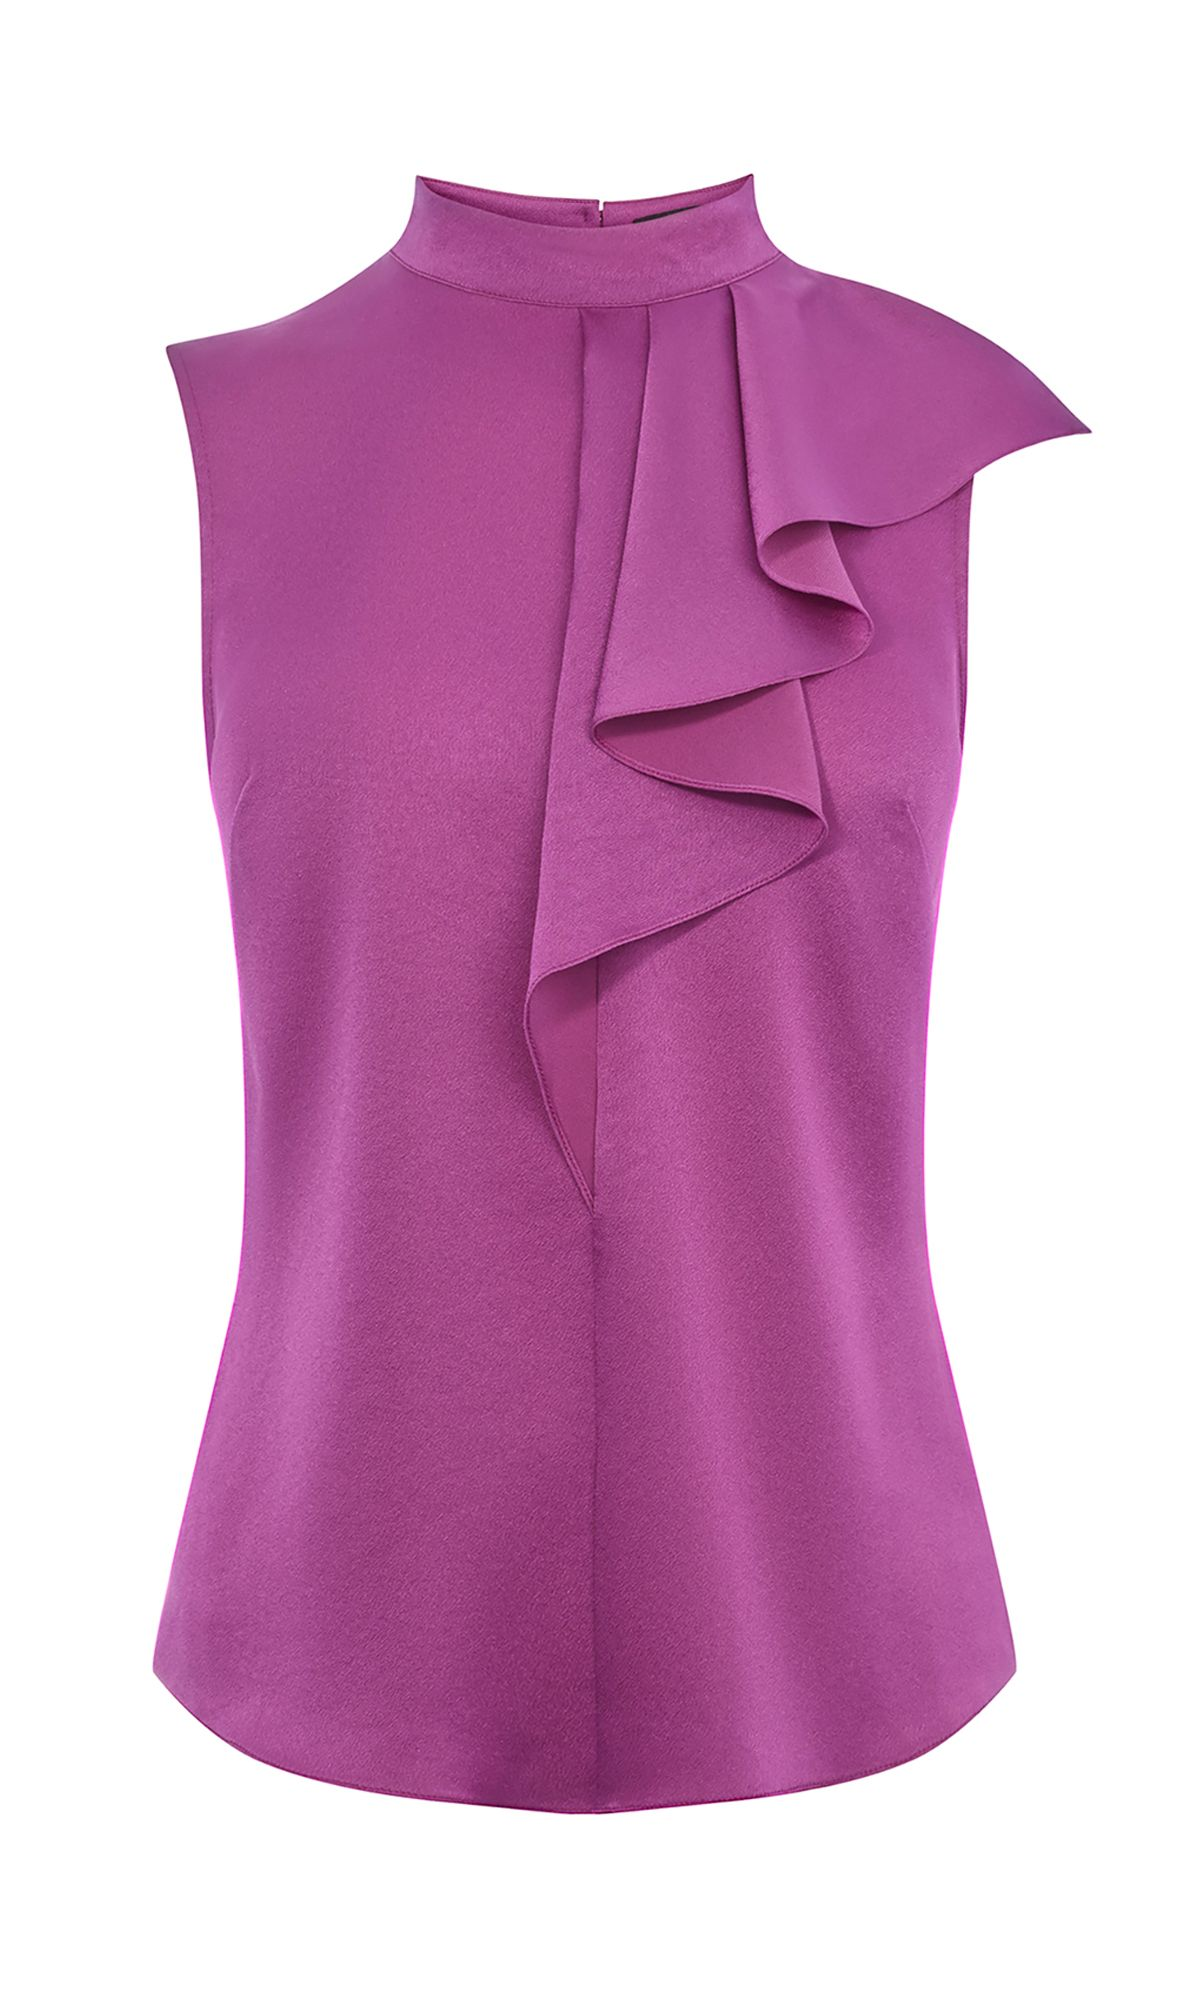 Karen Millen Ruffle Neck Top, Purple